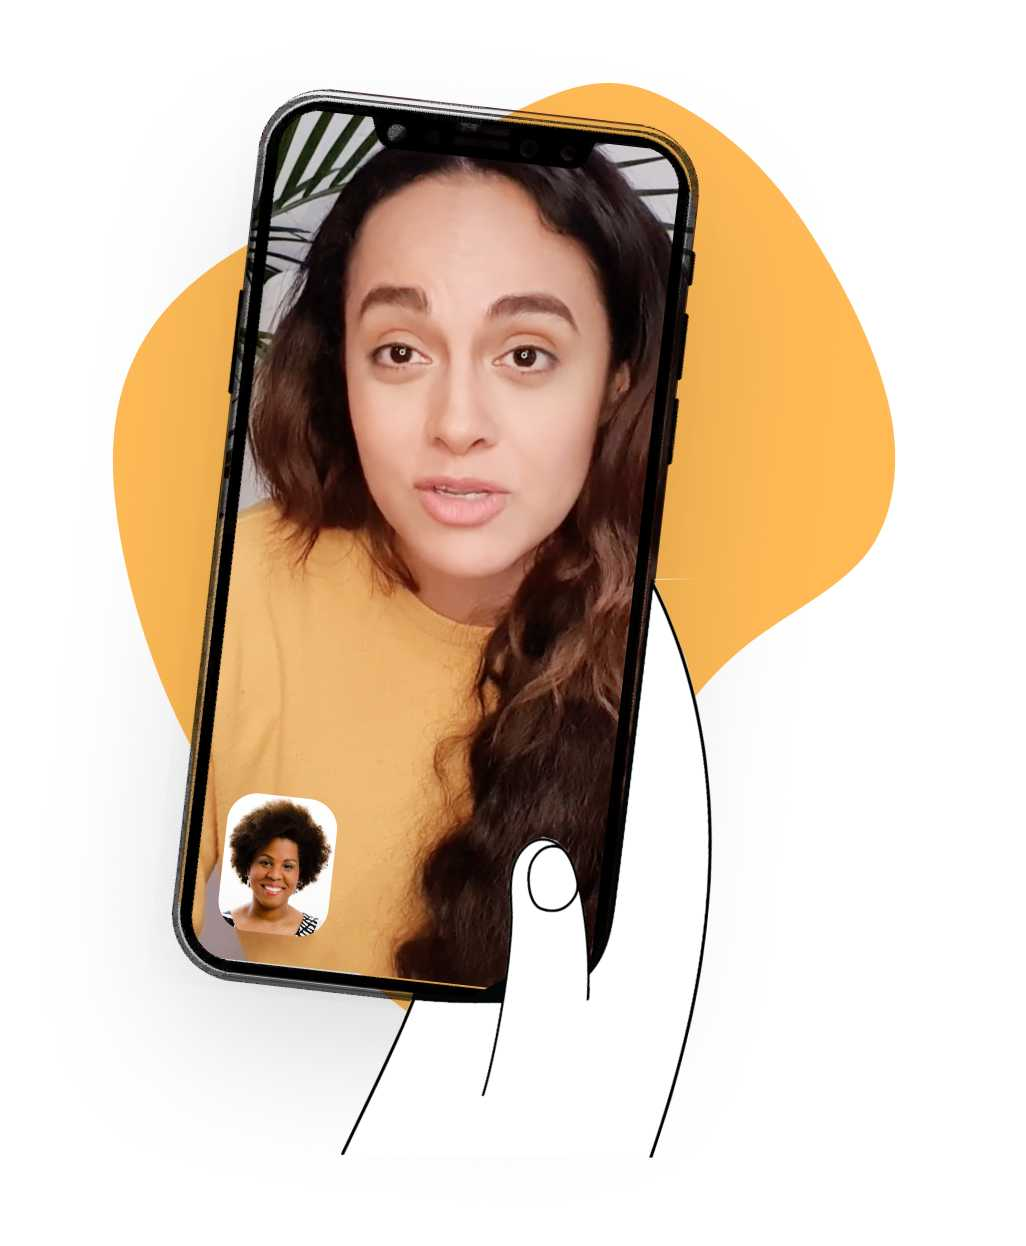 Having a video chat on a mobile phone held by a cartoon hand on top of a yellow blob